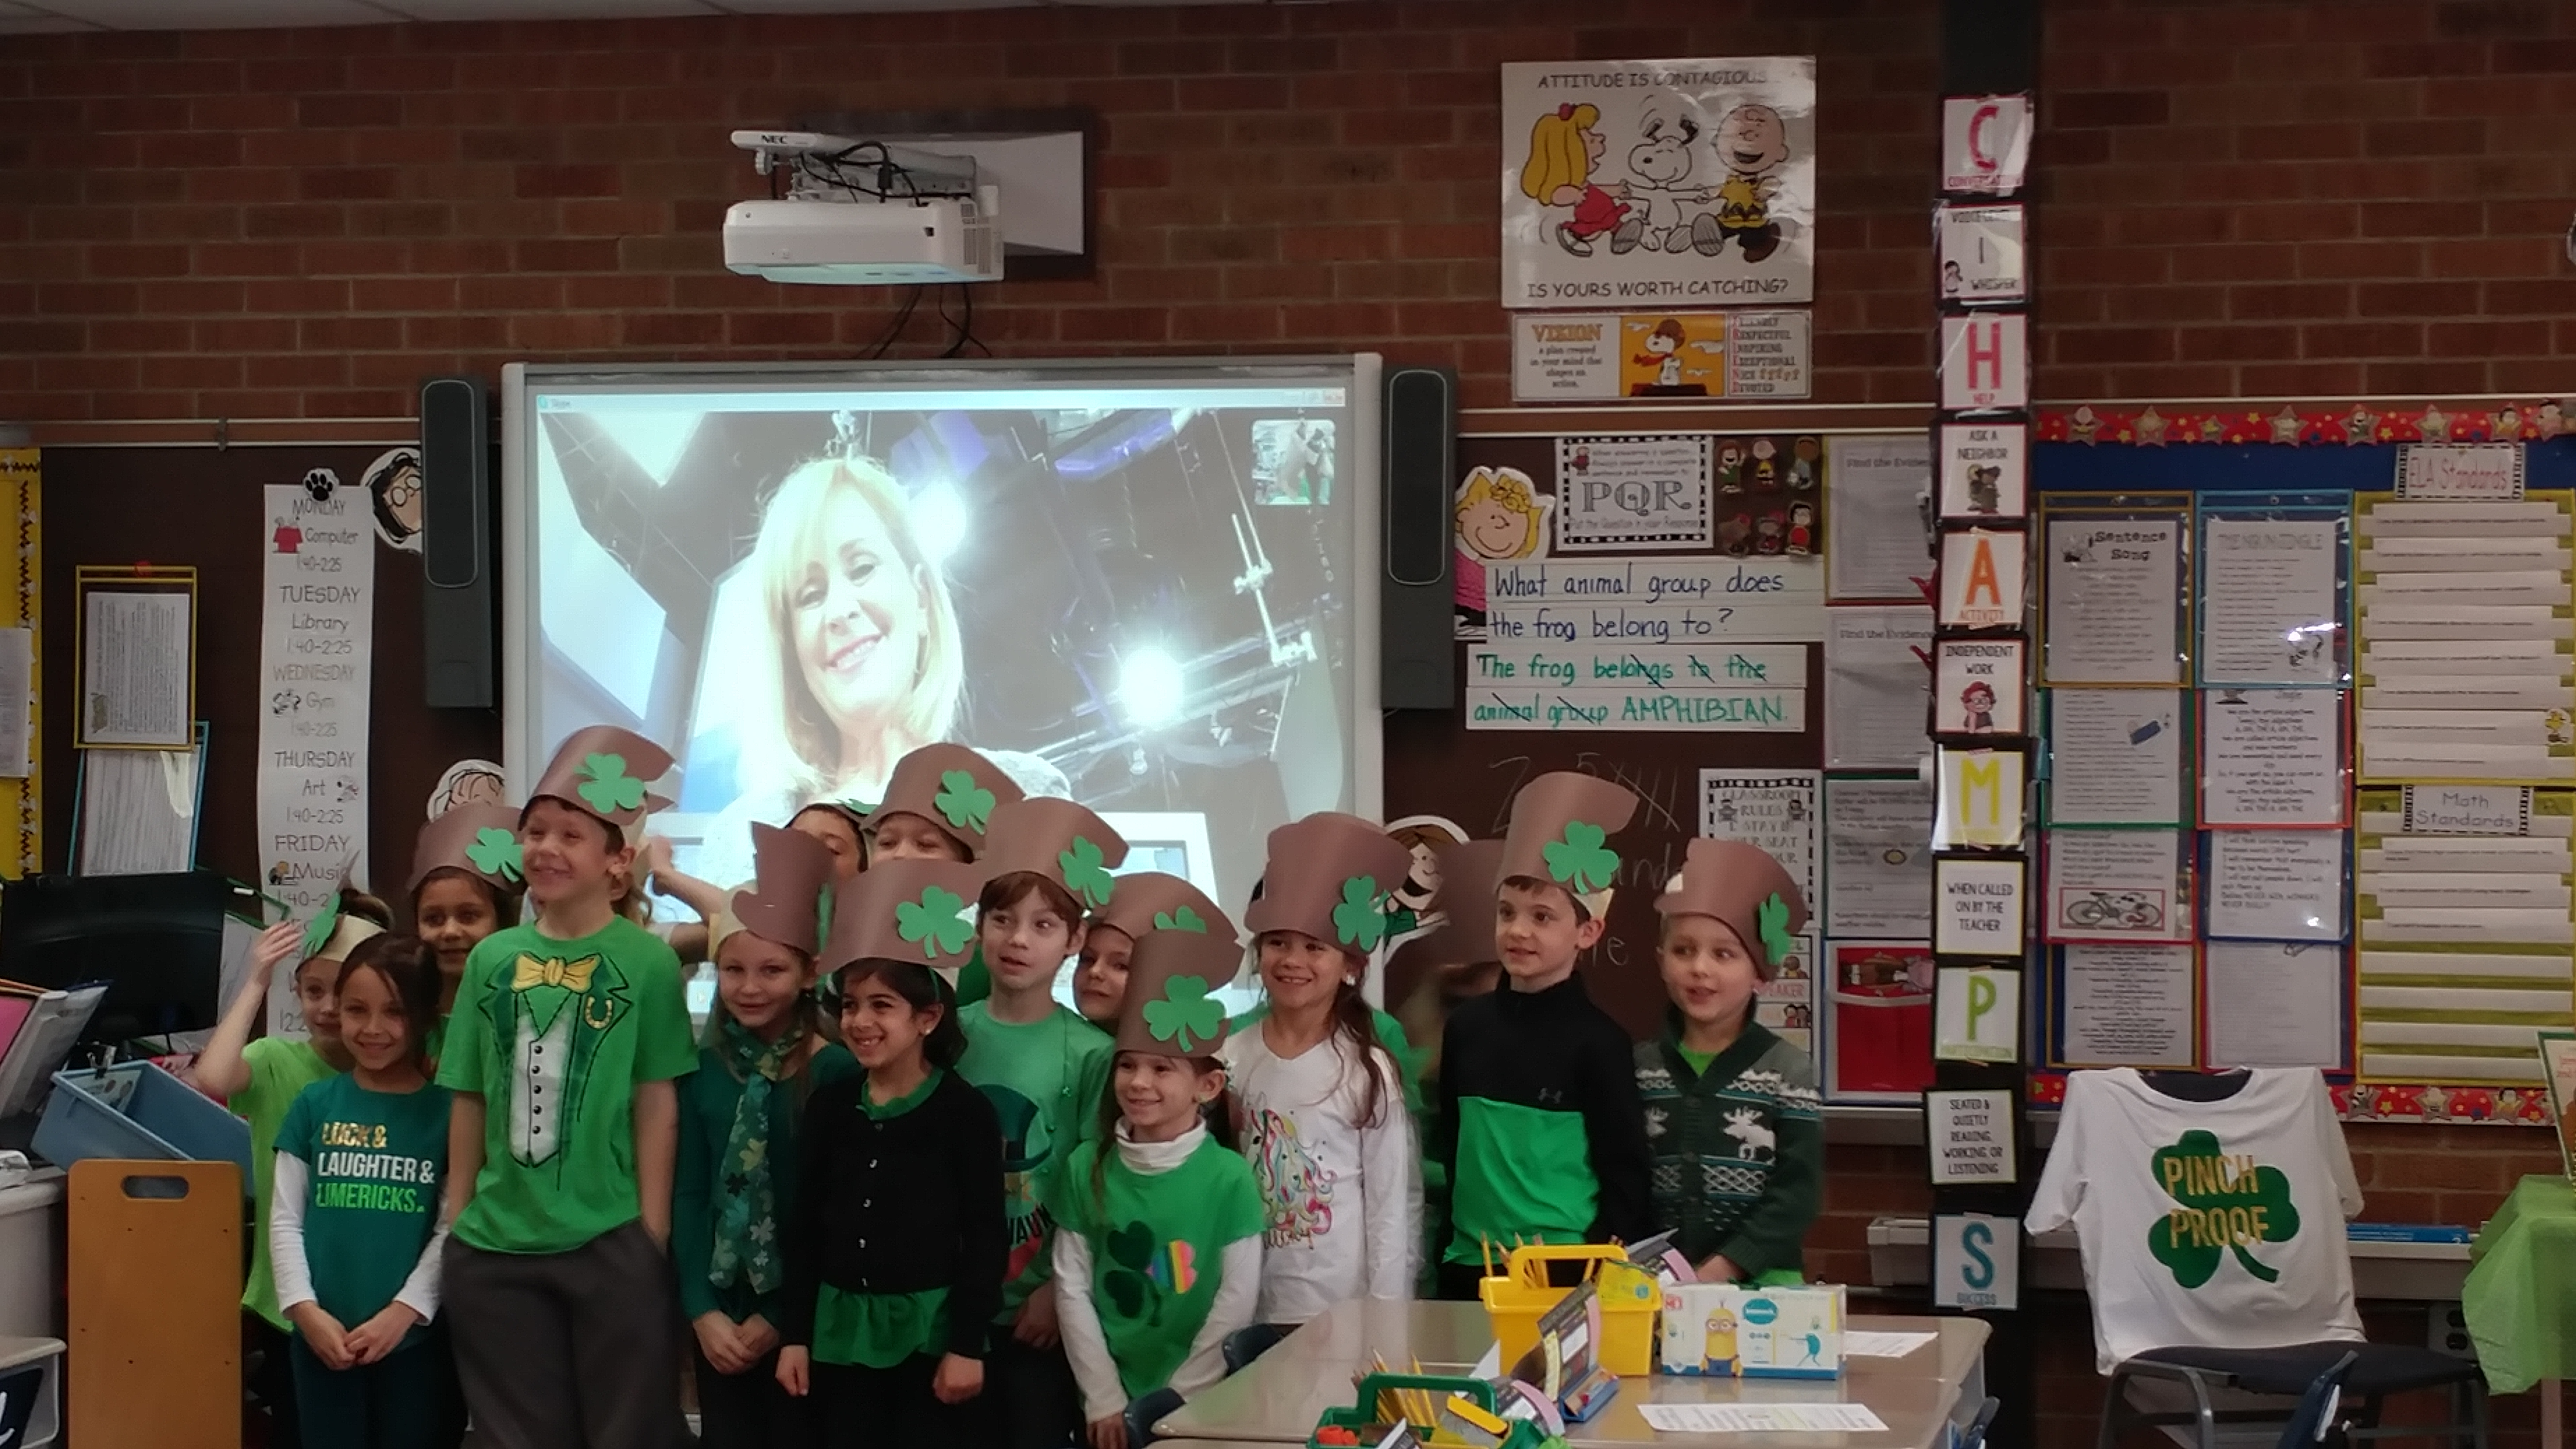 Kolling Elementary School Teacher Cheryl Bussey and her first grade class on Skype with Meteorologist Tracey Butler from ABC 7 News.